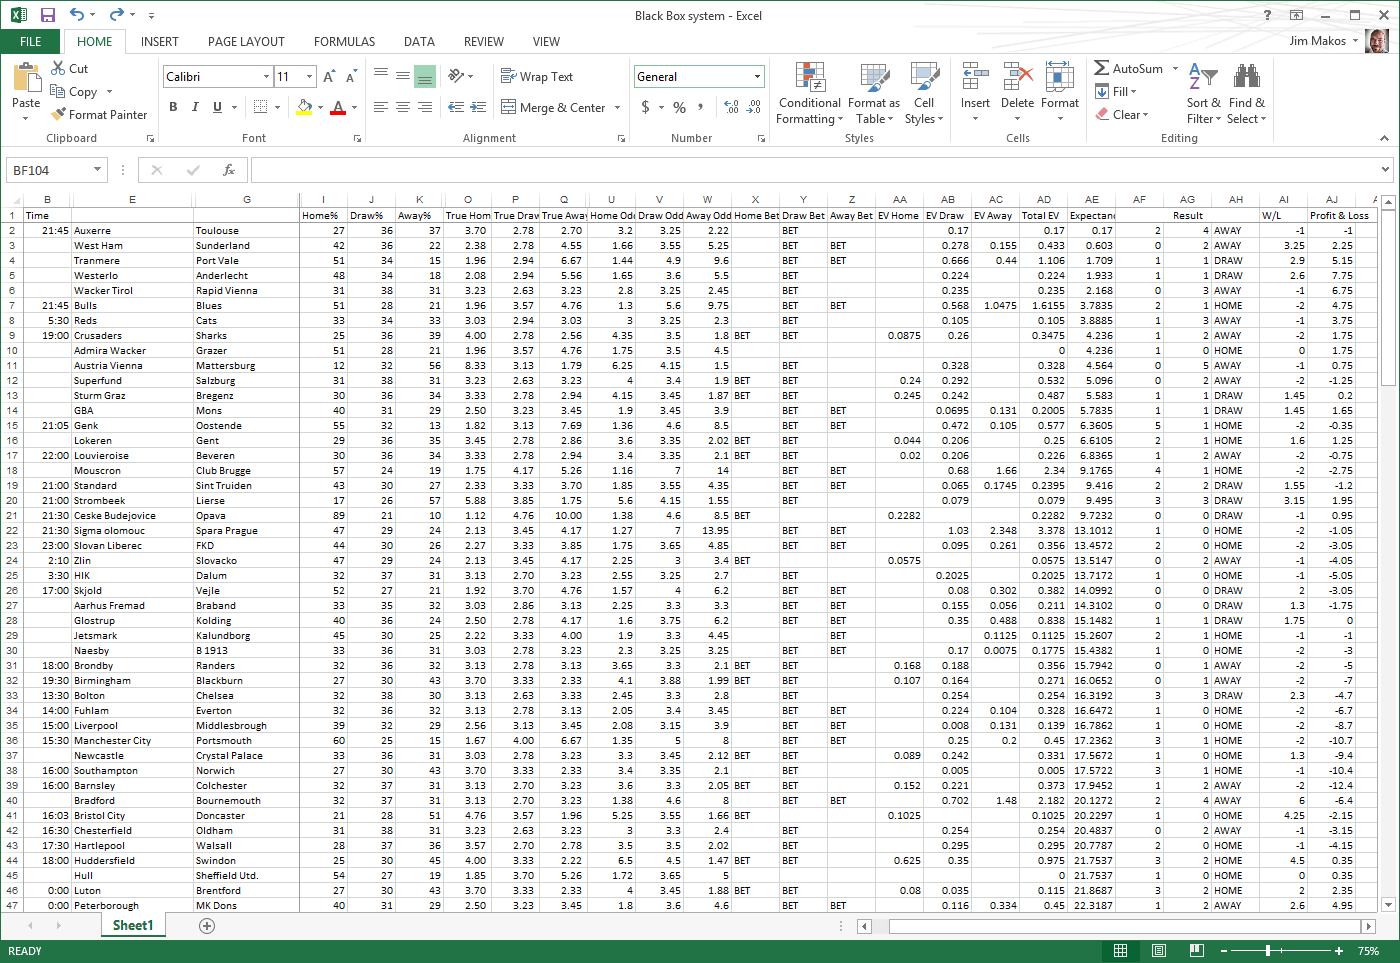 how to share excel sheet for multiple users